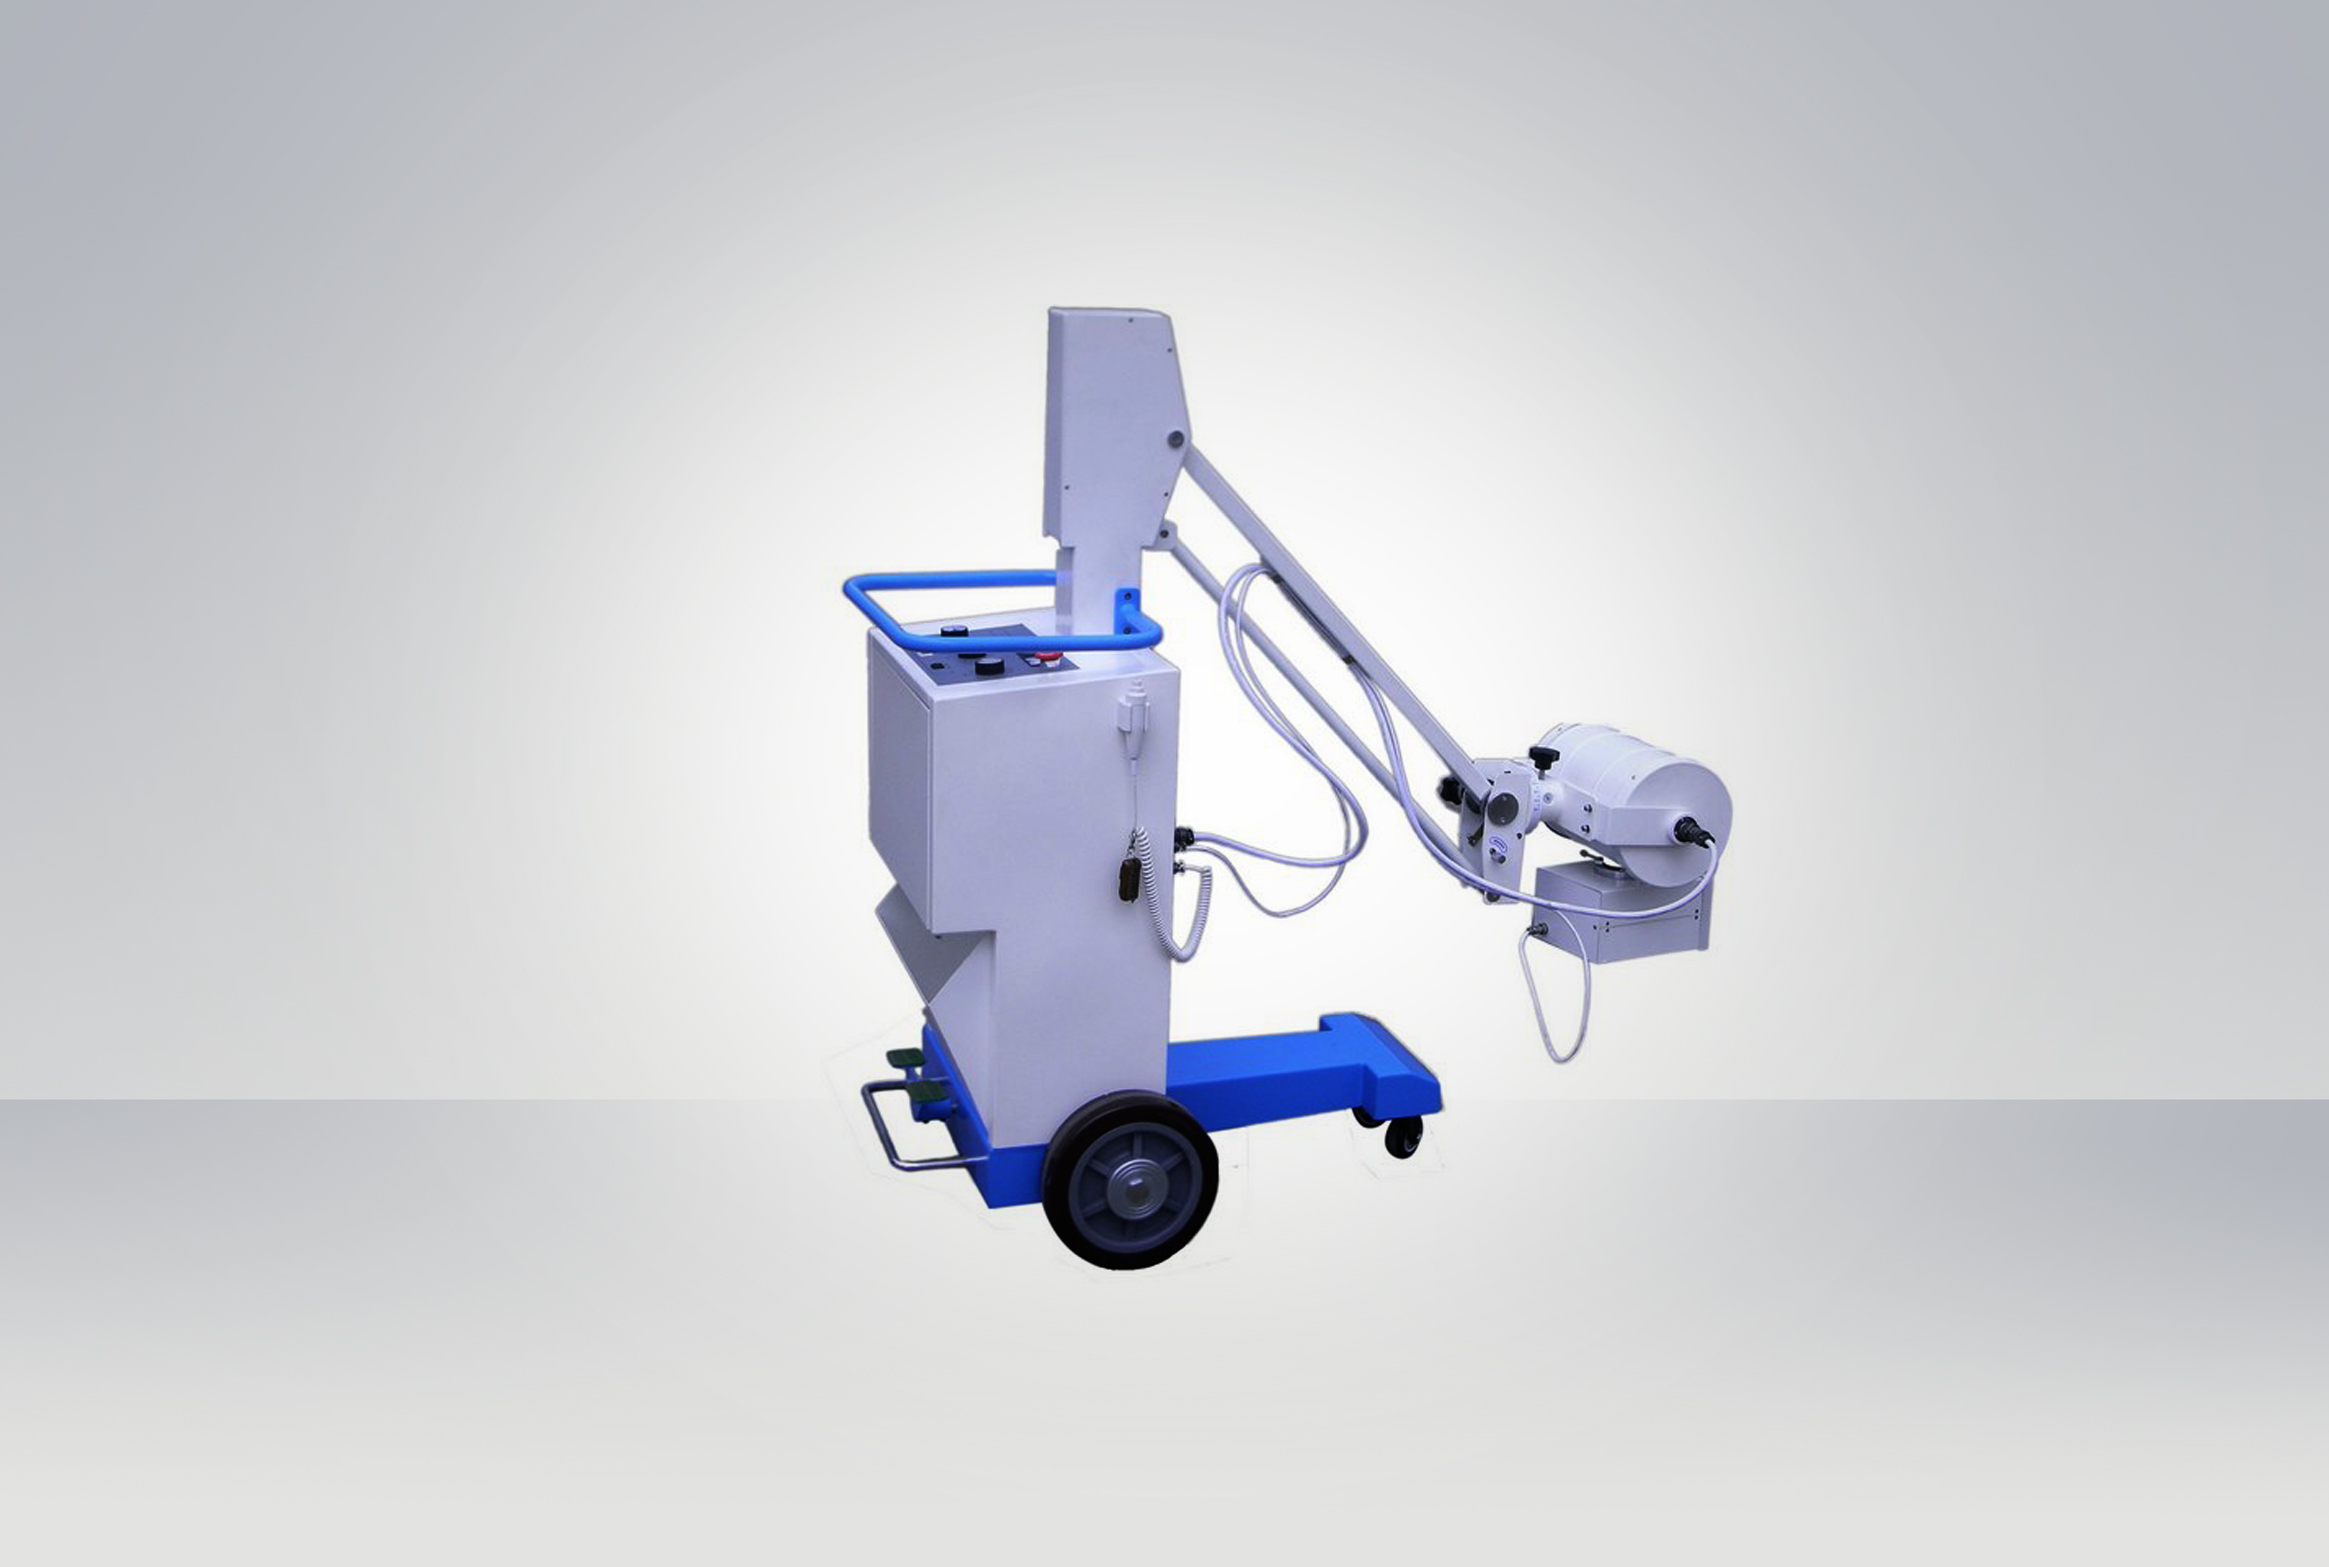 50mA Mobile X-Ray Unit